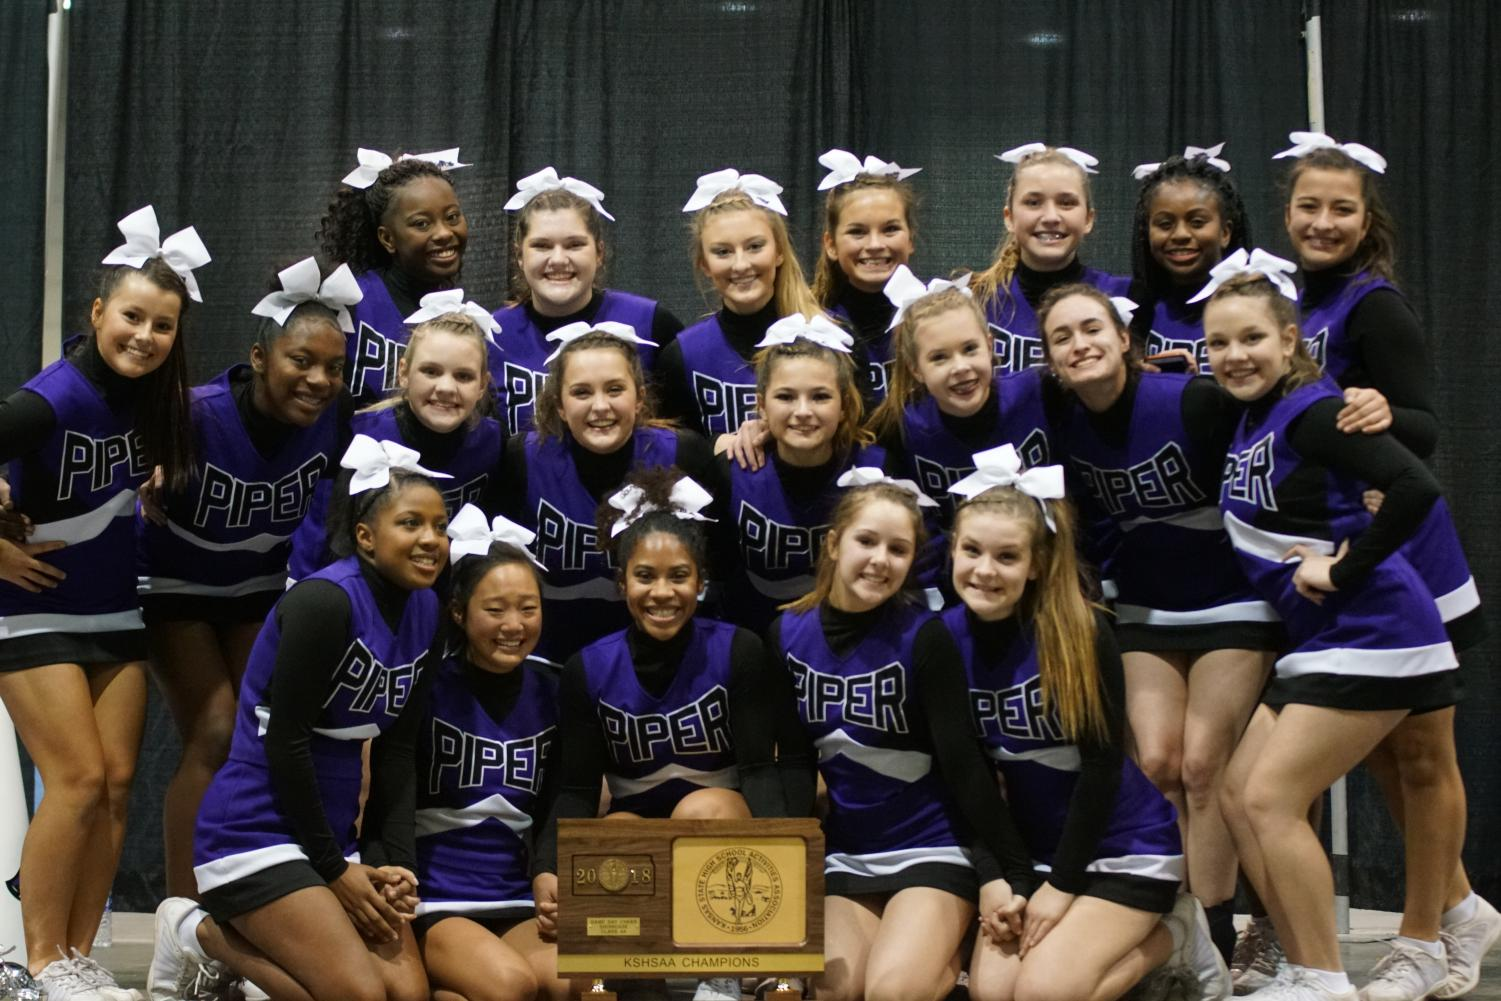 Cheer team celebrates State Game Day Competition win with trophy.